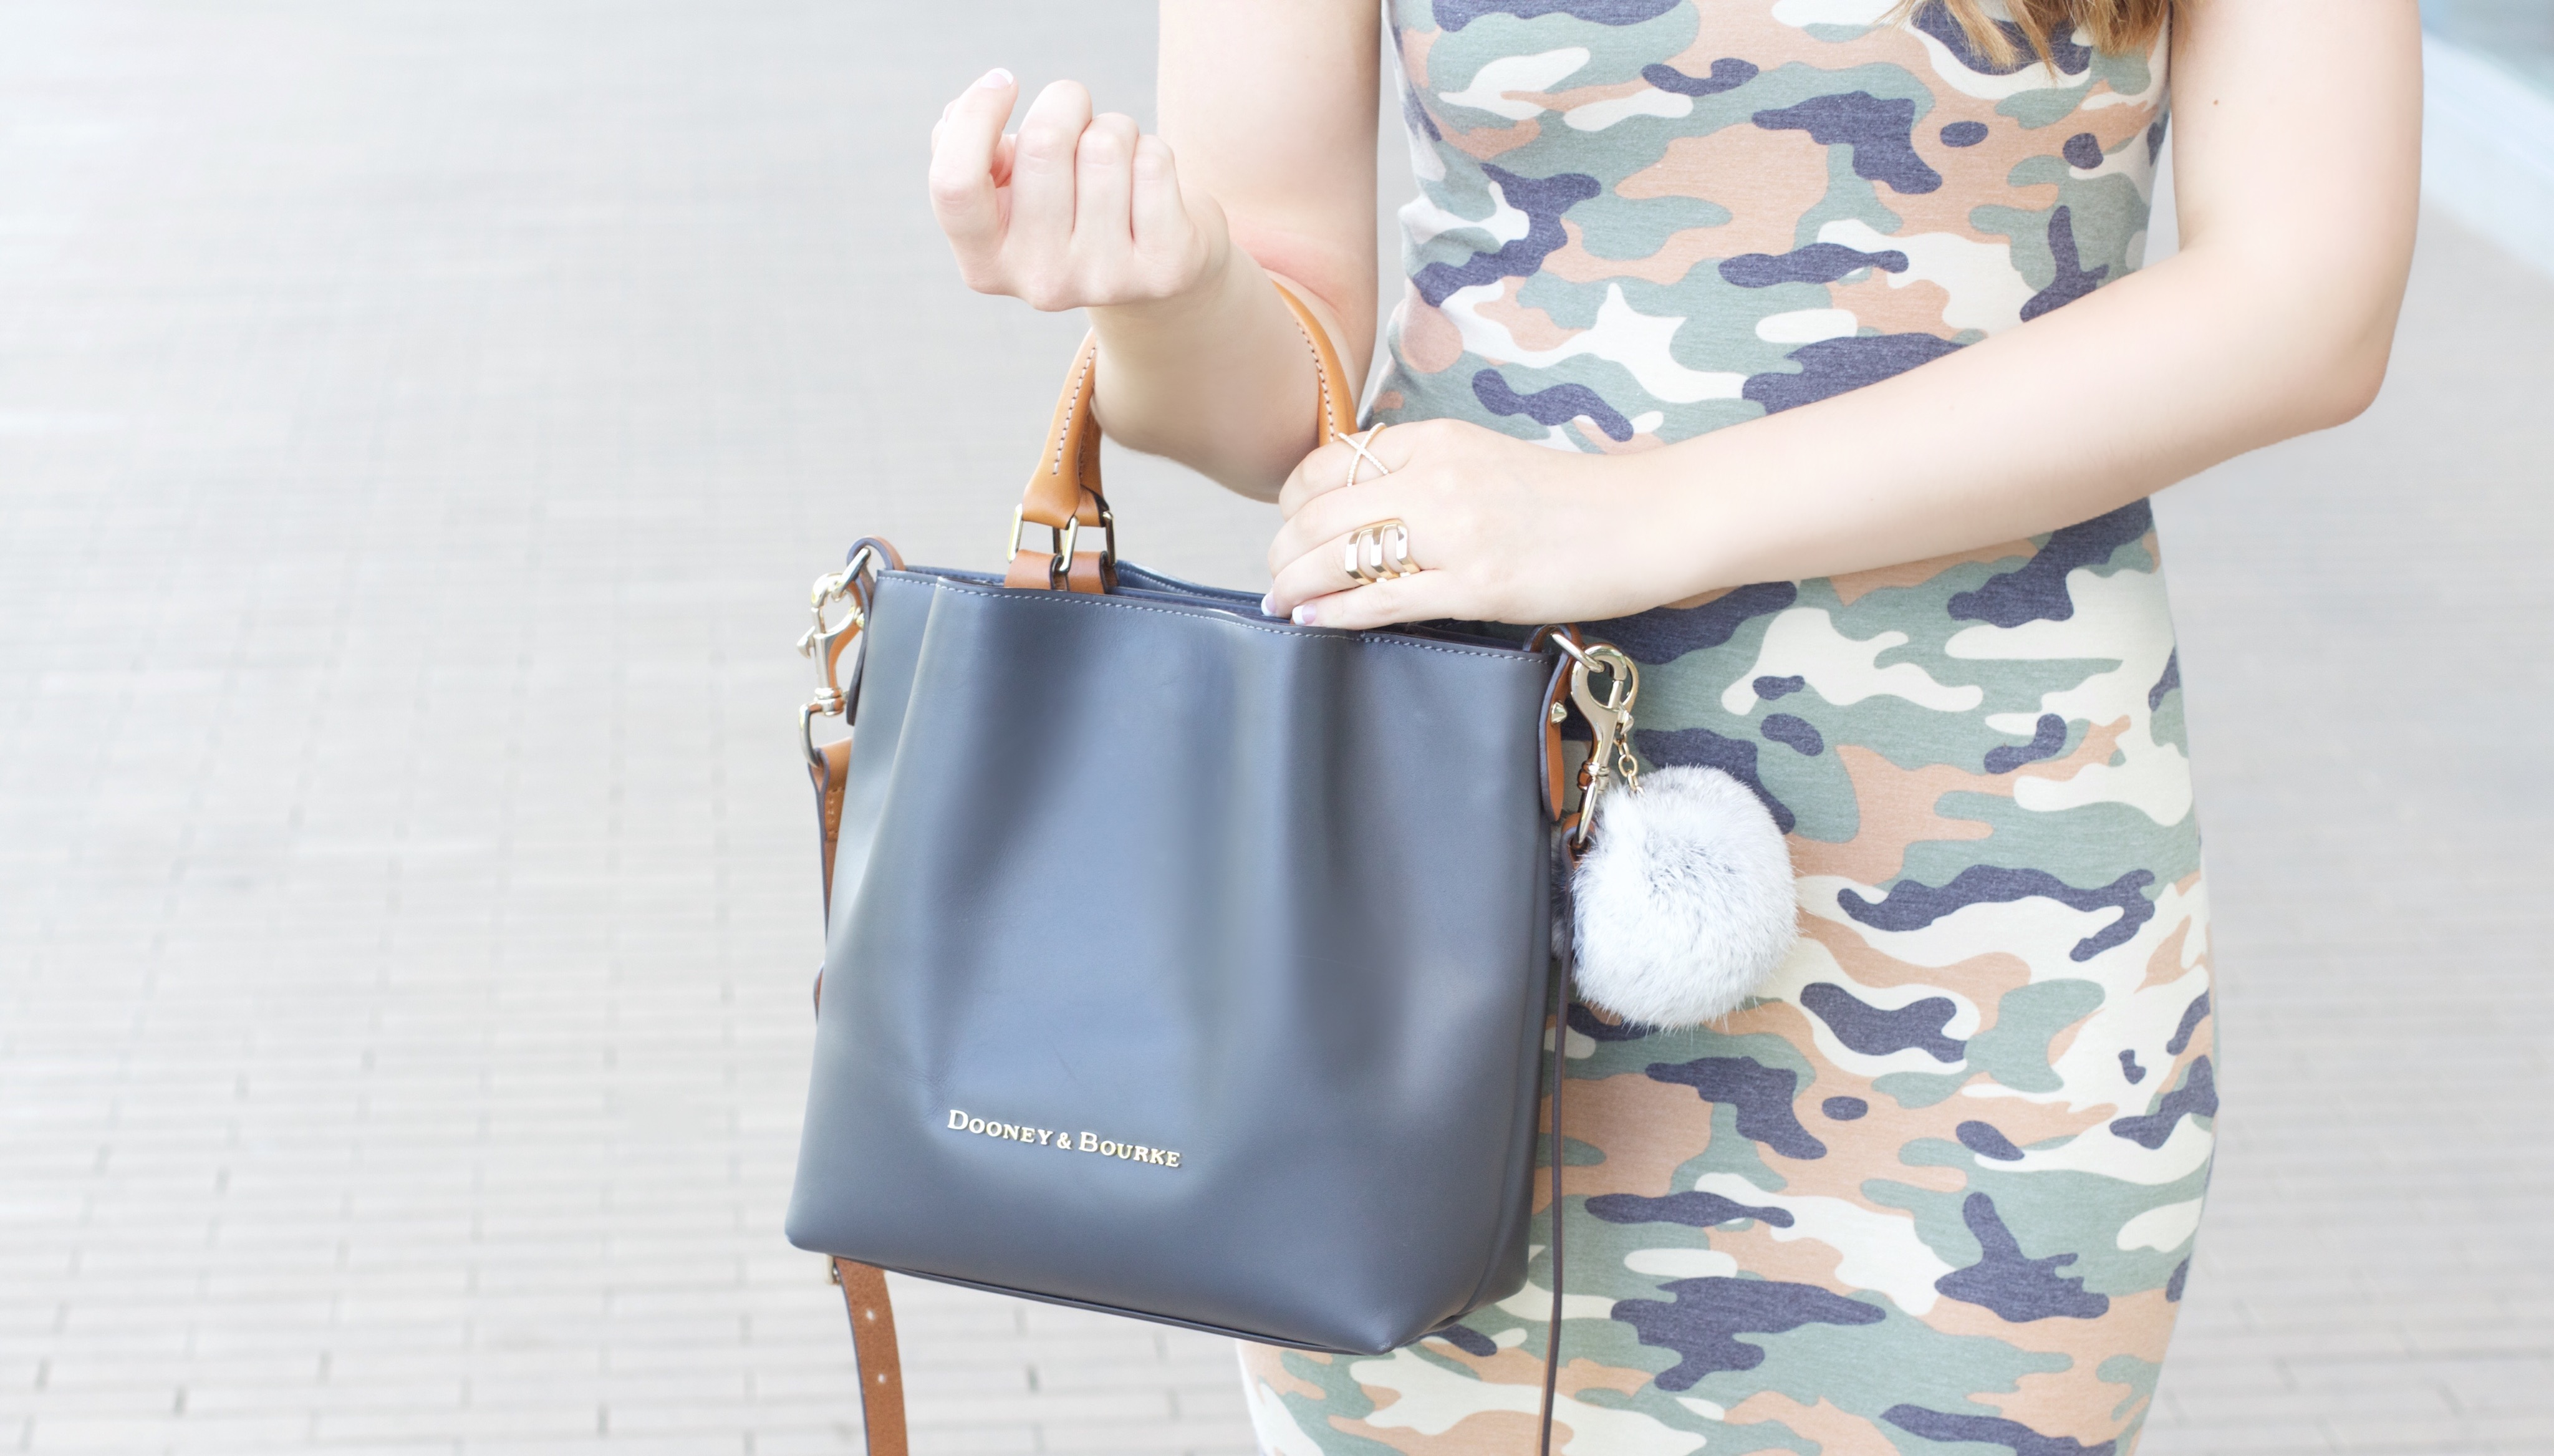 Dooney & Bourke City Small Barlow Bag - My Styled Life